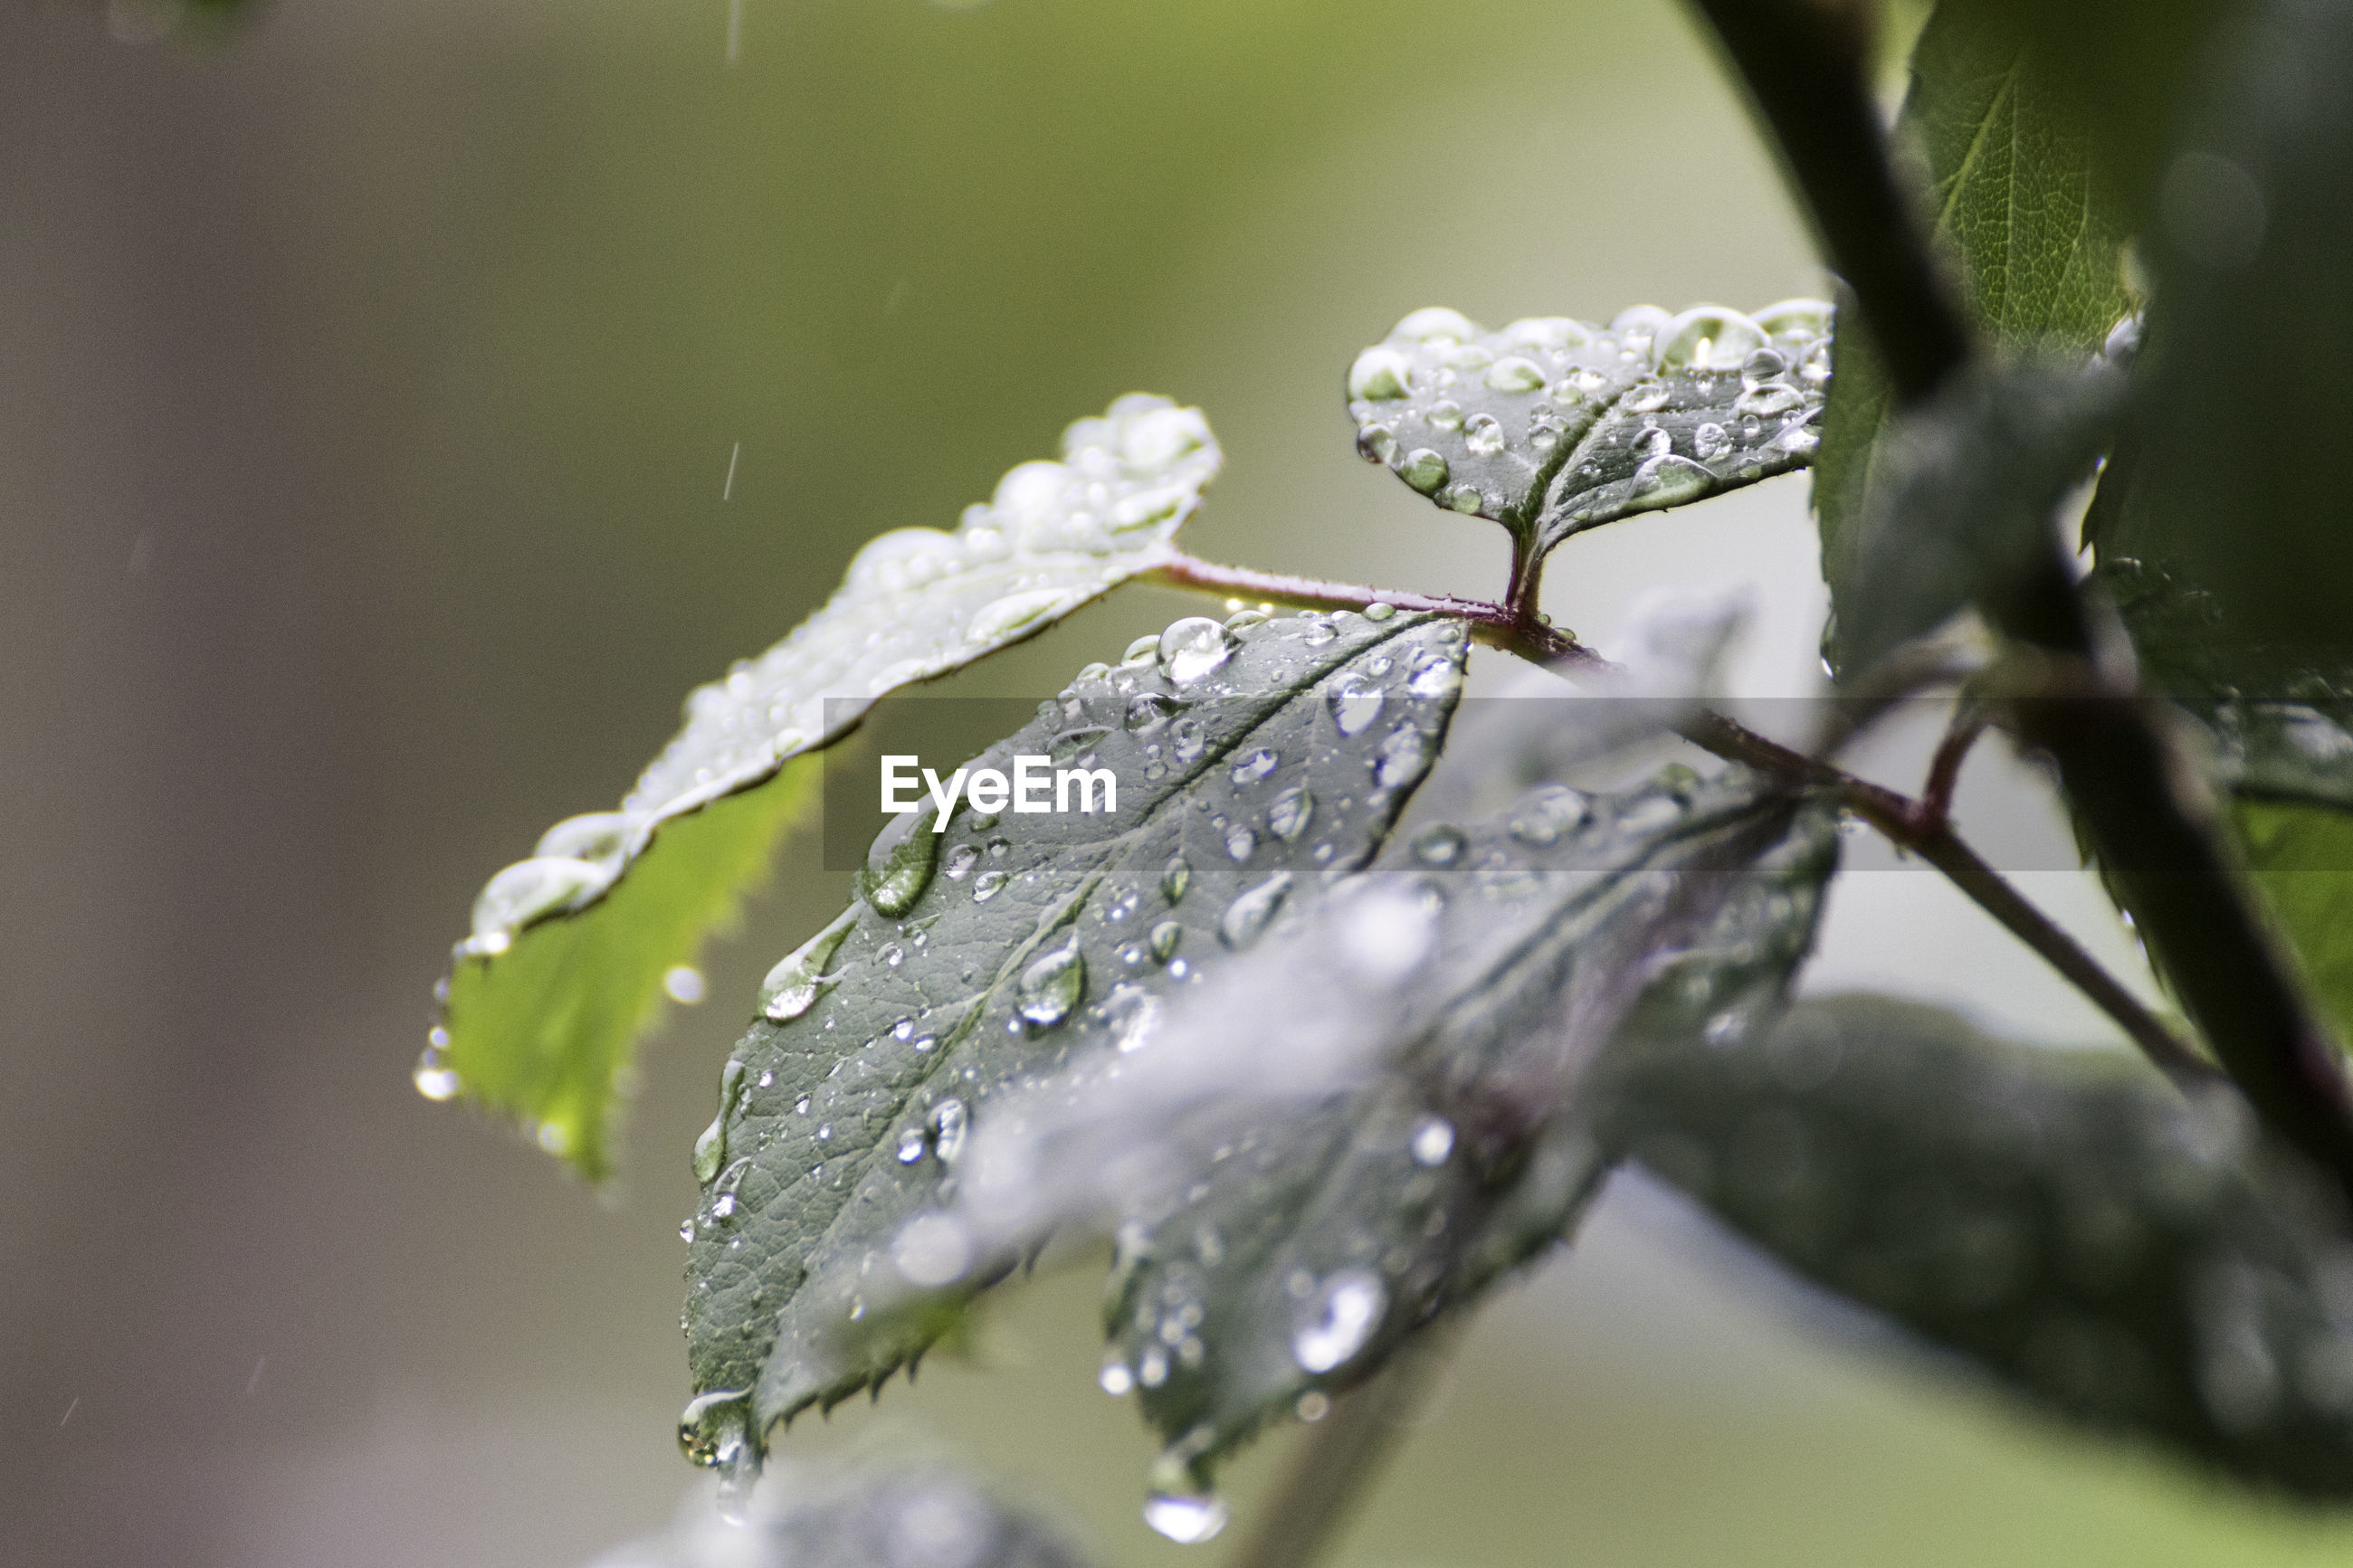 CLOSE-UP OF RAINDROPS ON PLANT LEAVES